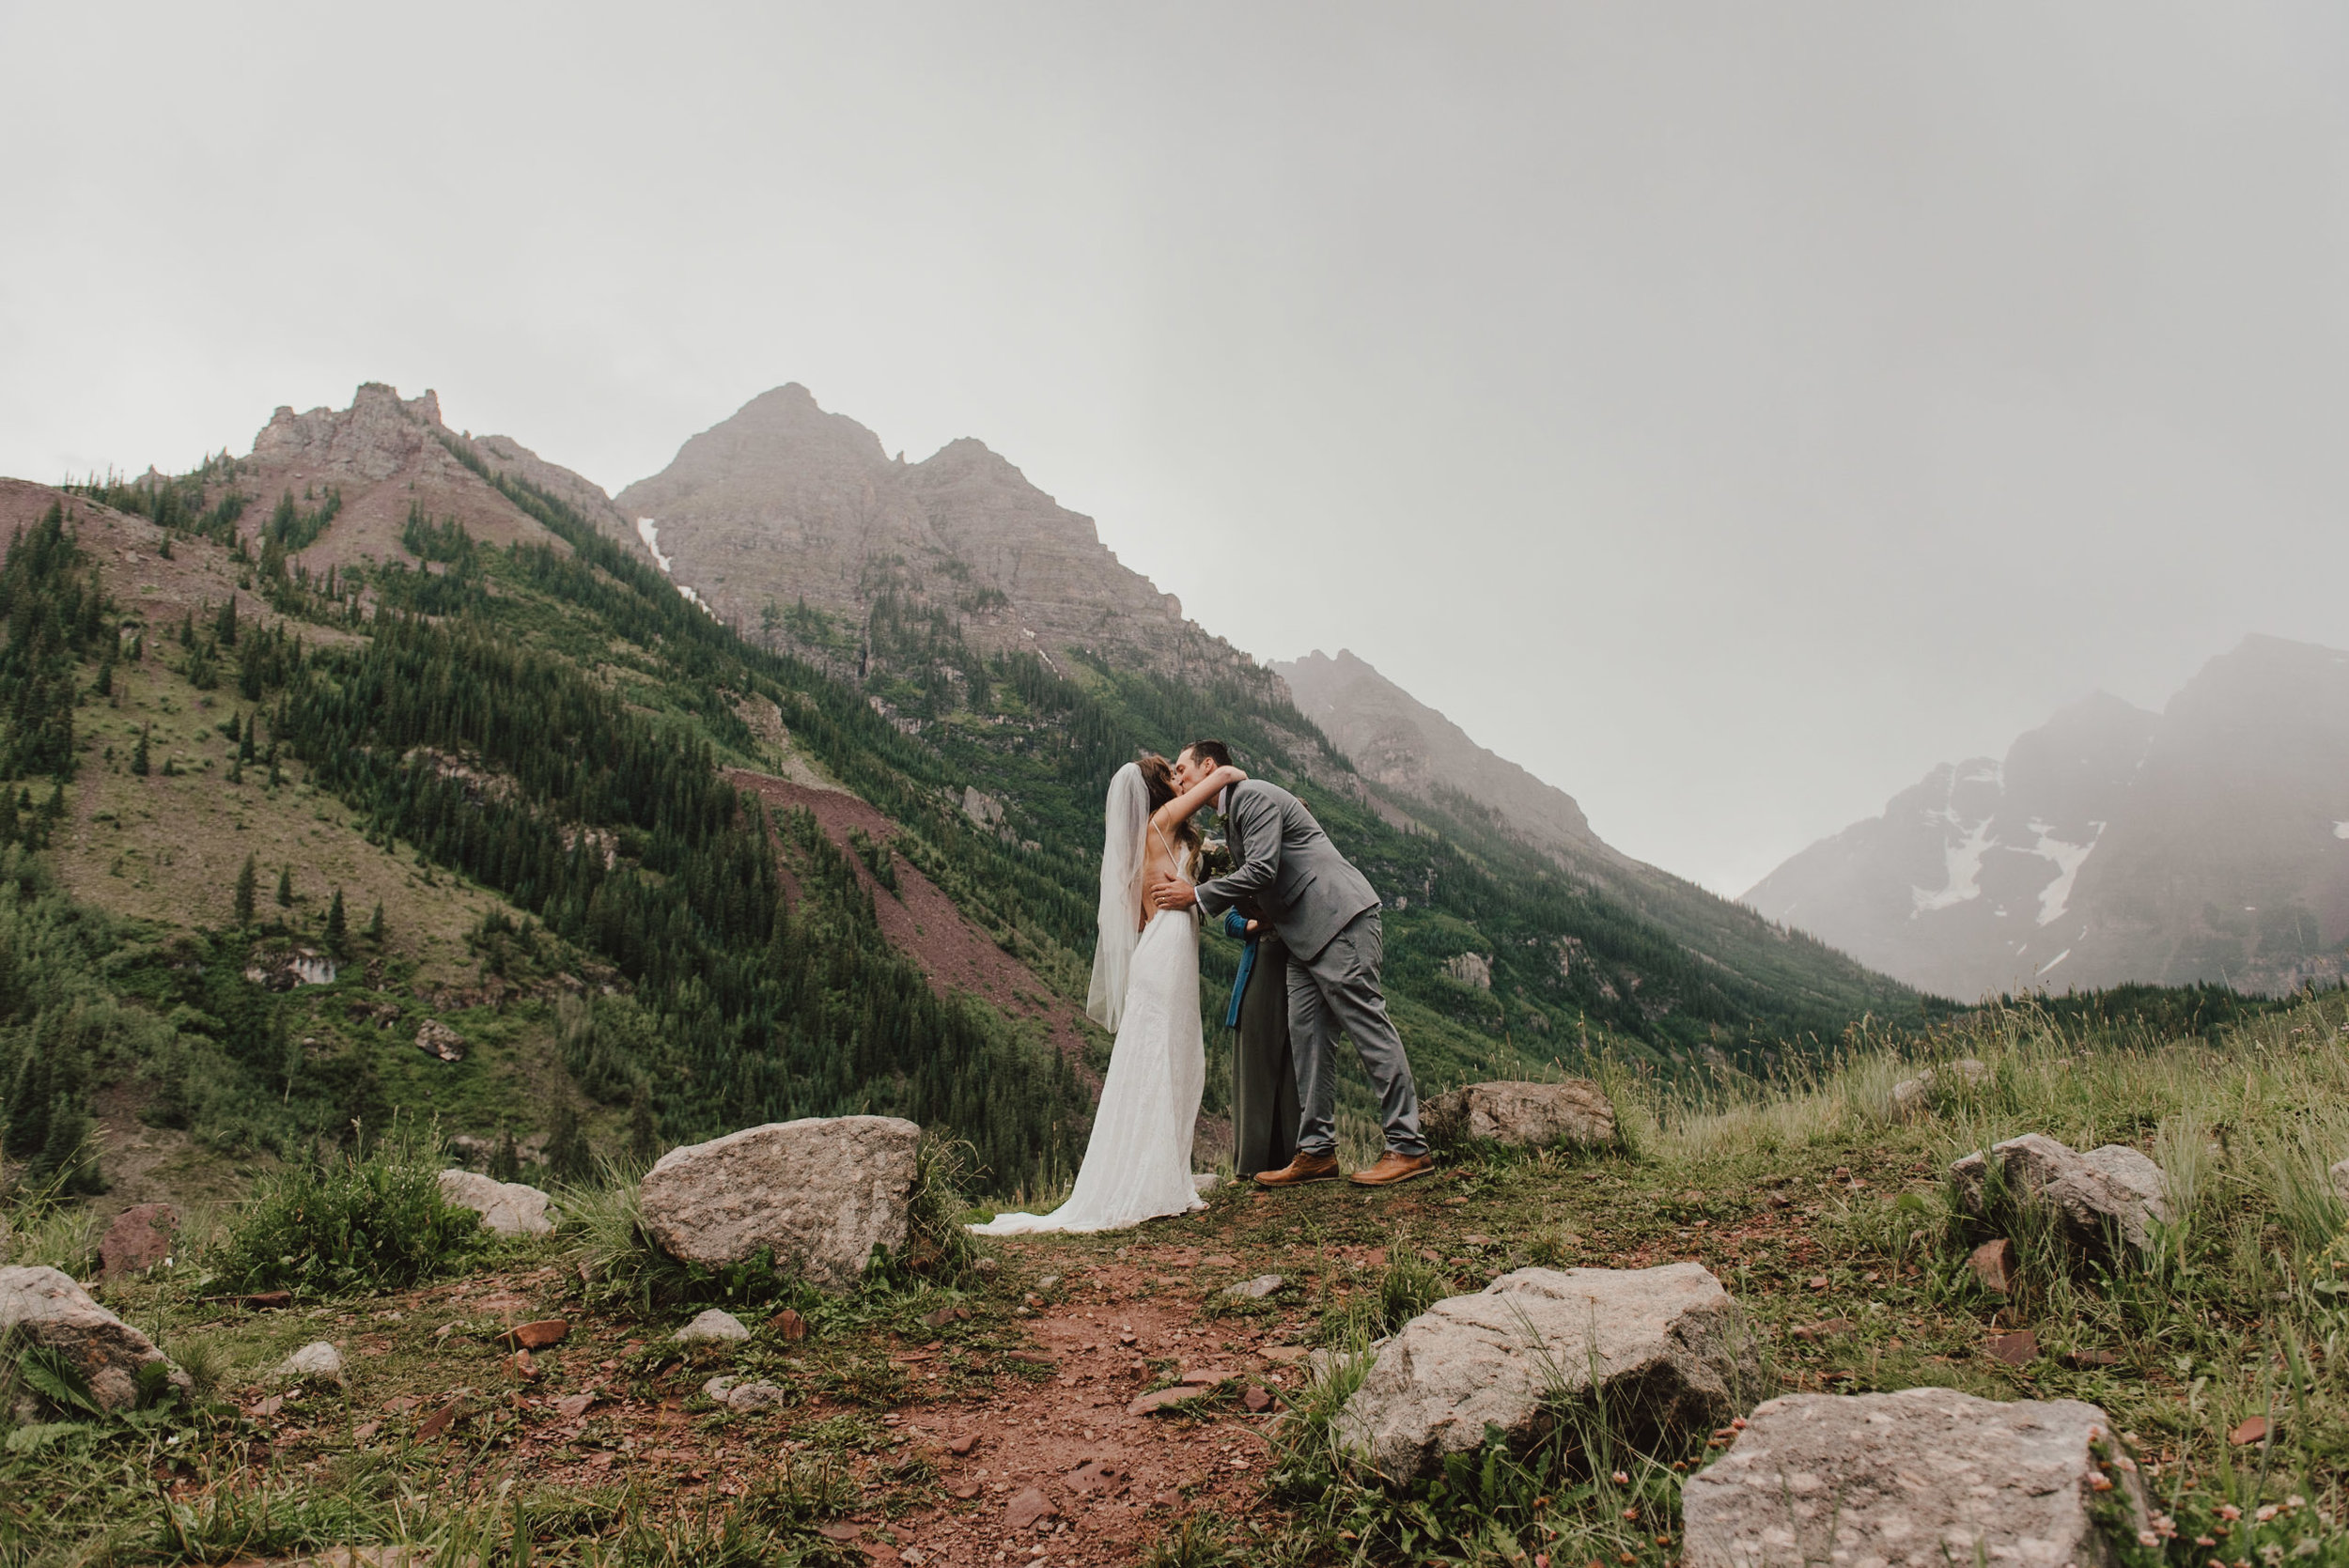 Heather and Darren sharing their first kiss as husband and wife at the Maroon Bells!